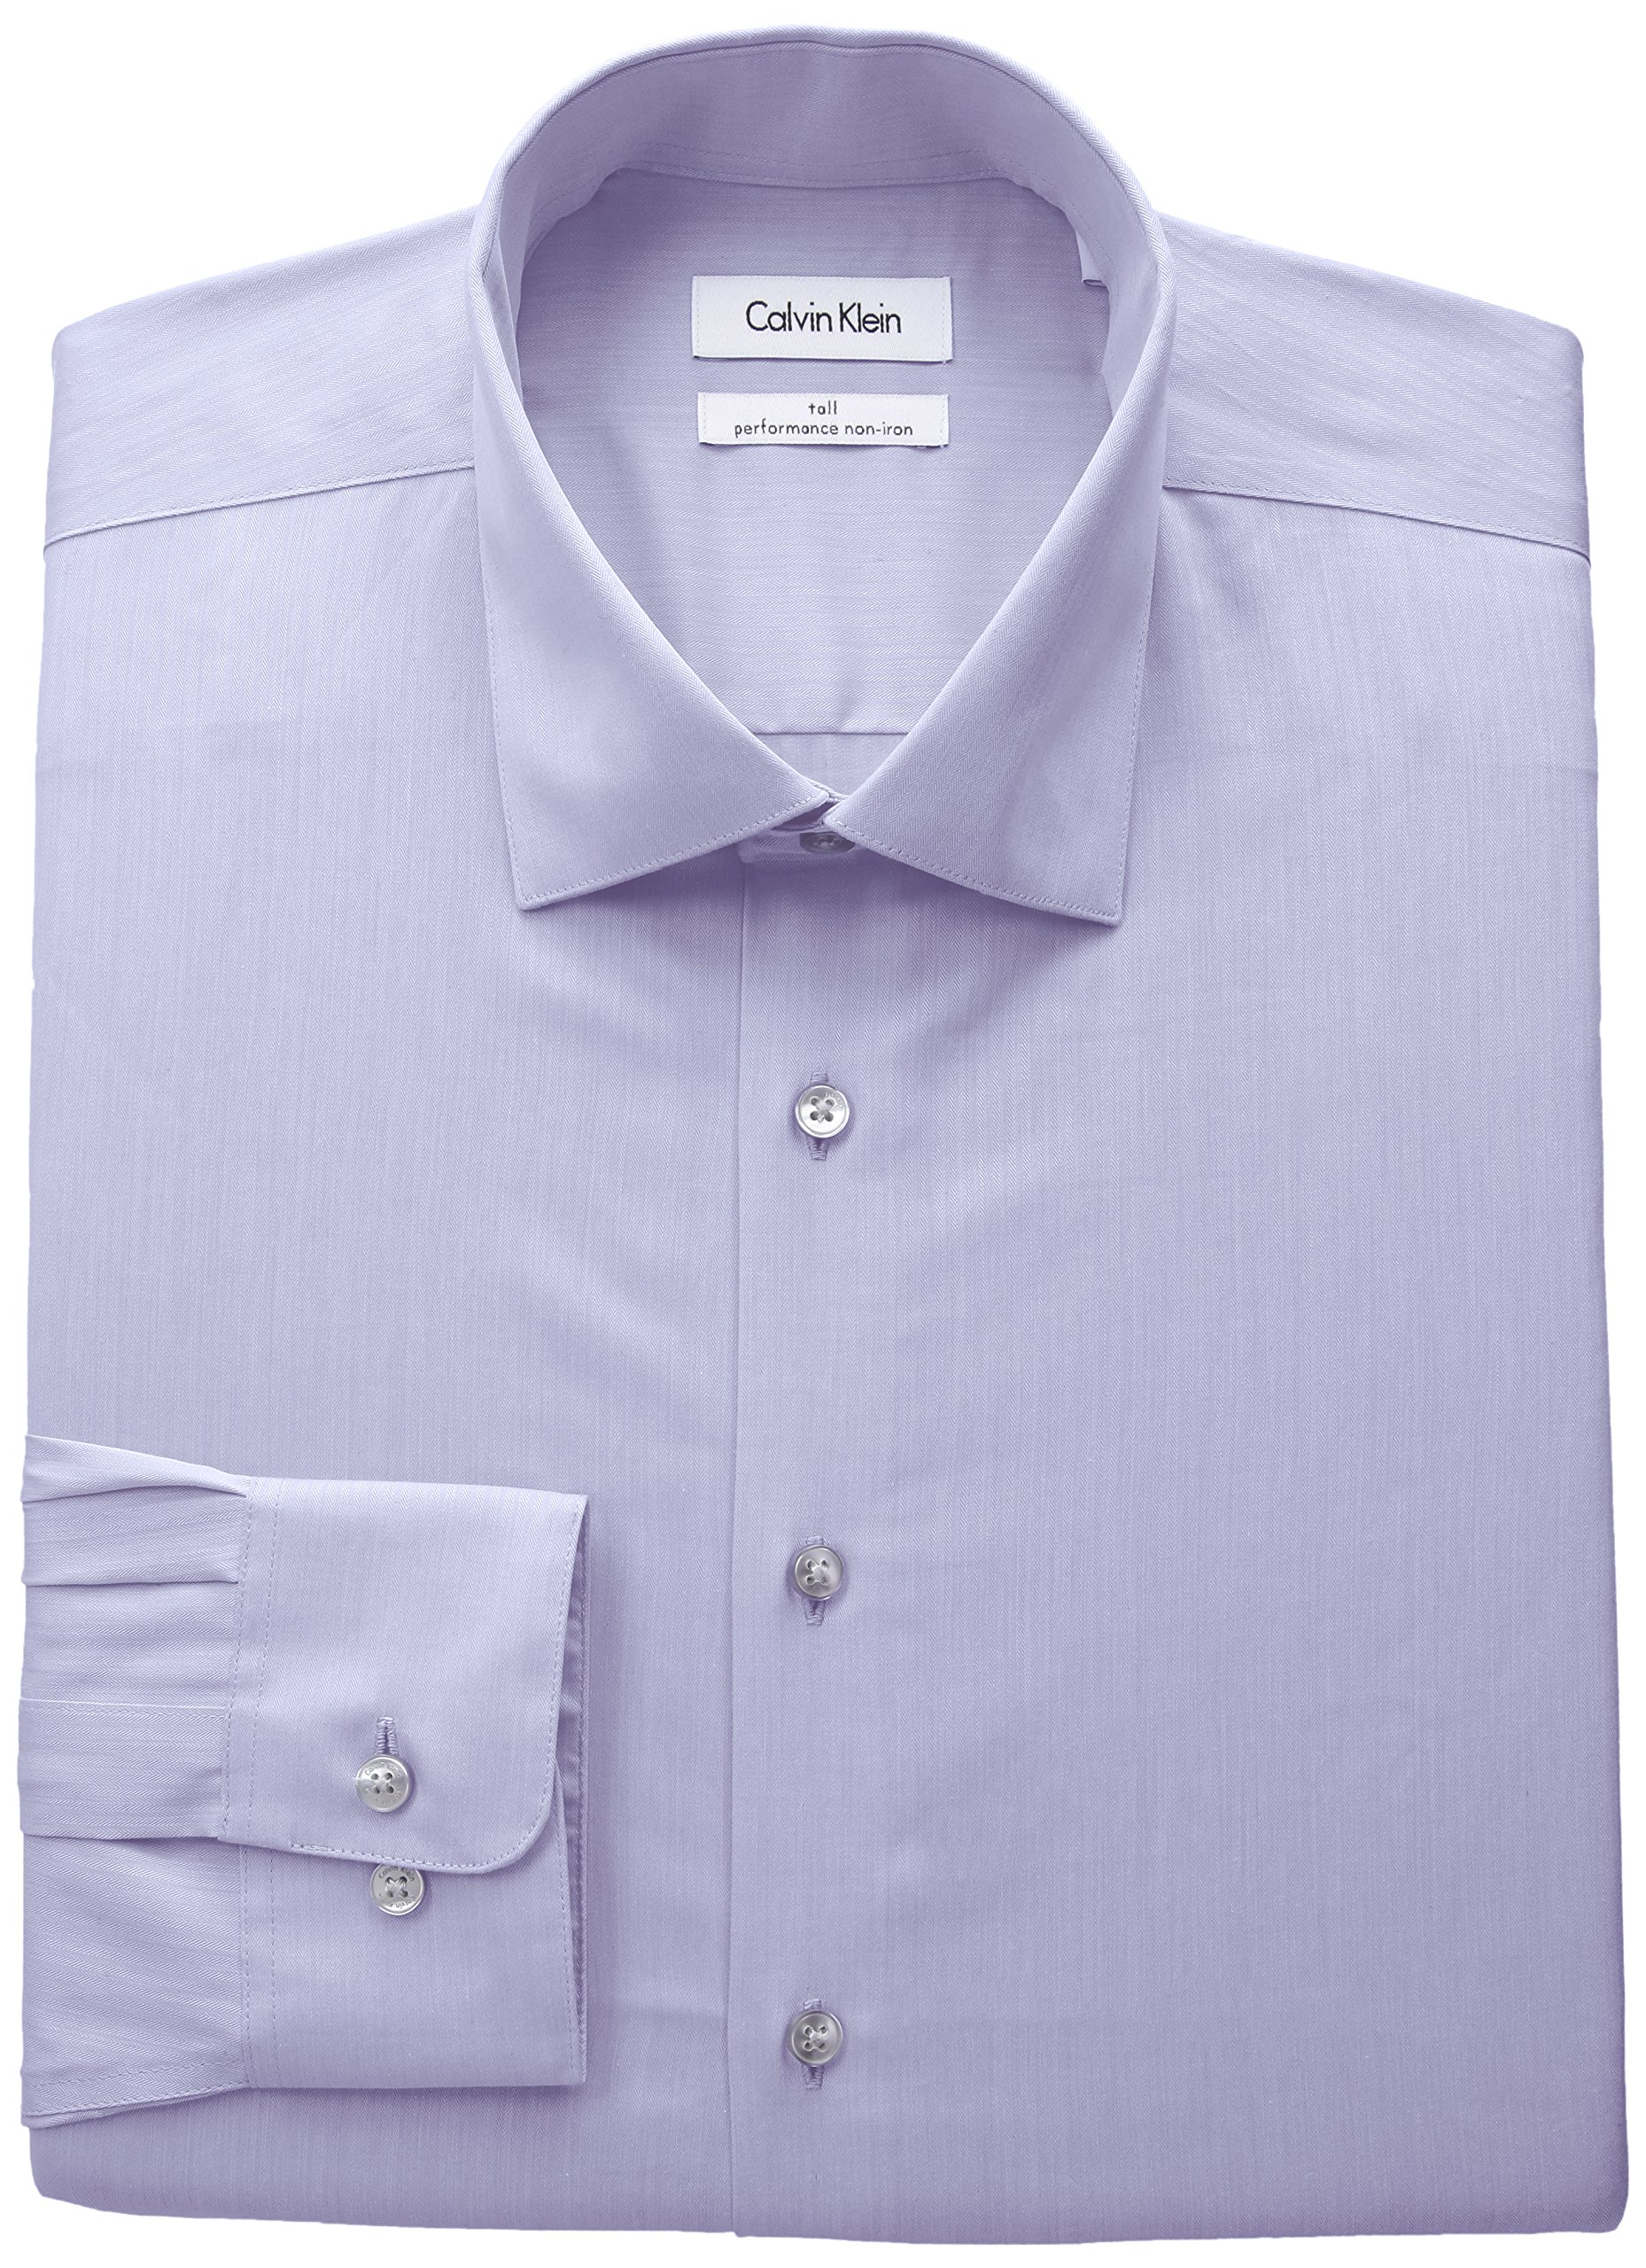 Calvin Klein Men's Big and Tall Non Iron Fit Herringbone Spread Collar Dress Shirt, Lilac, 18.5'' Neck 37''-38'' Sleeve by Calvin Klein (Image #1)